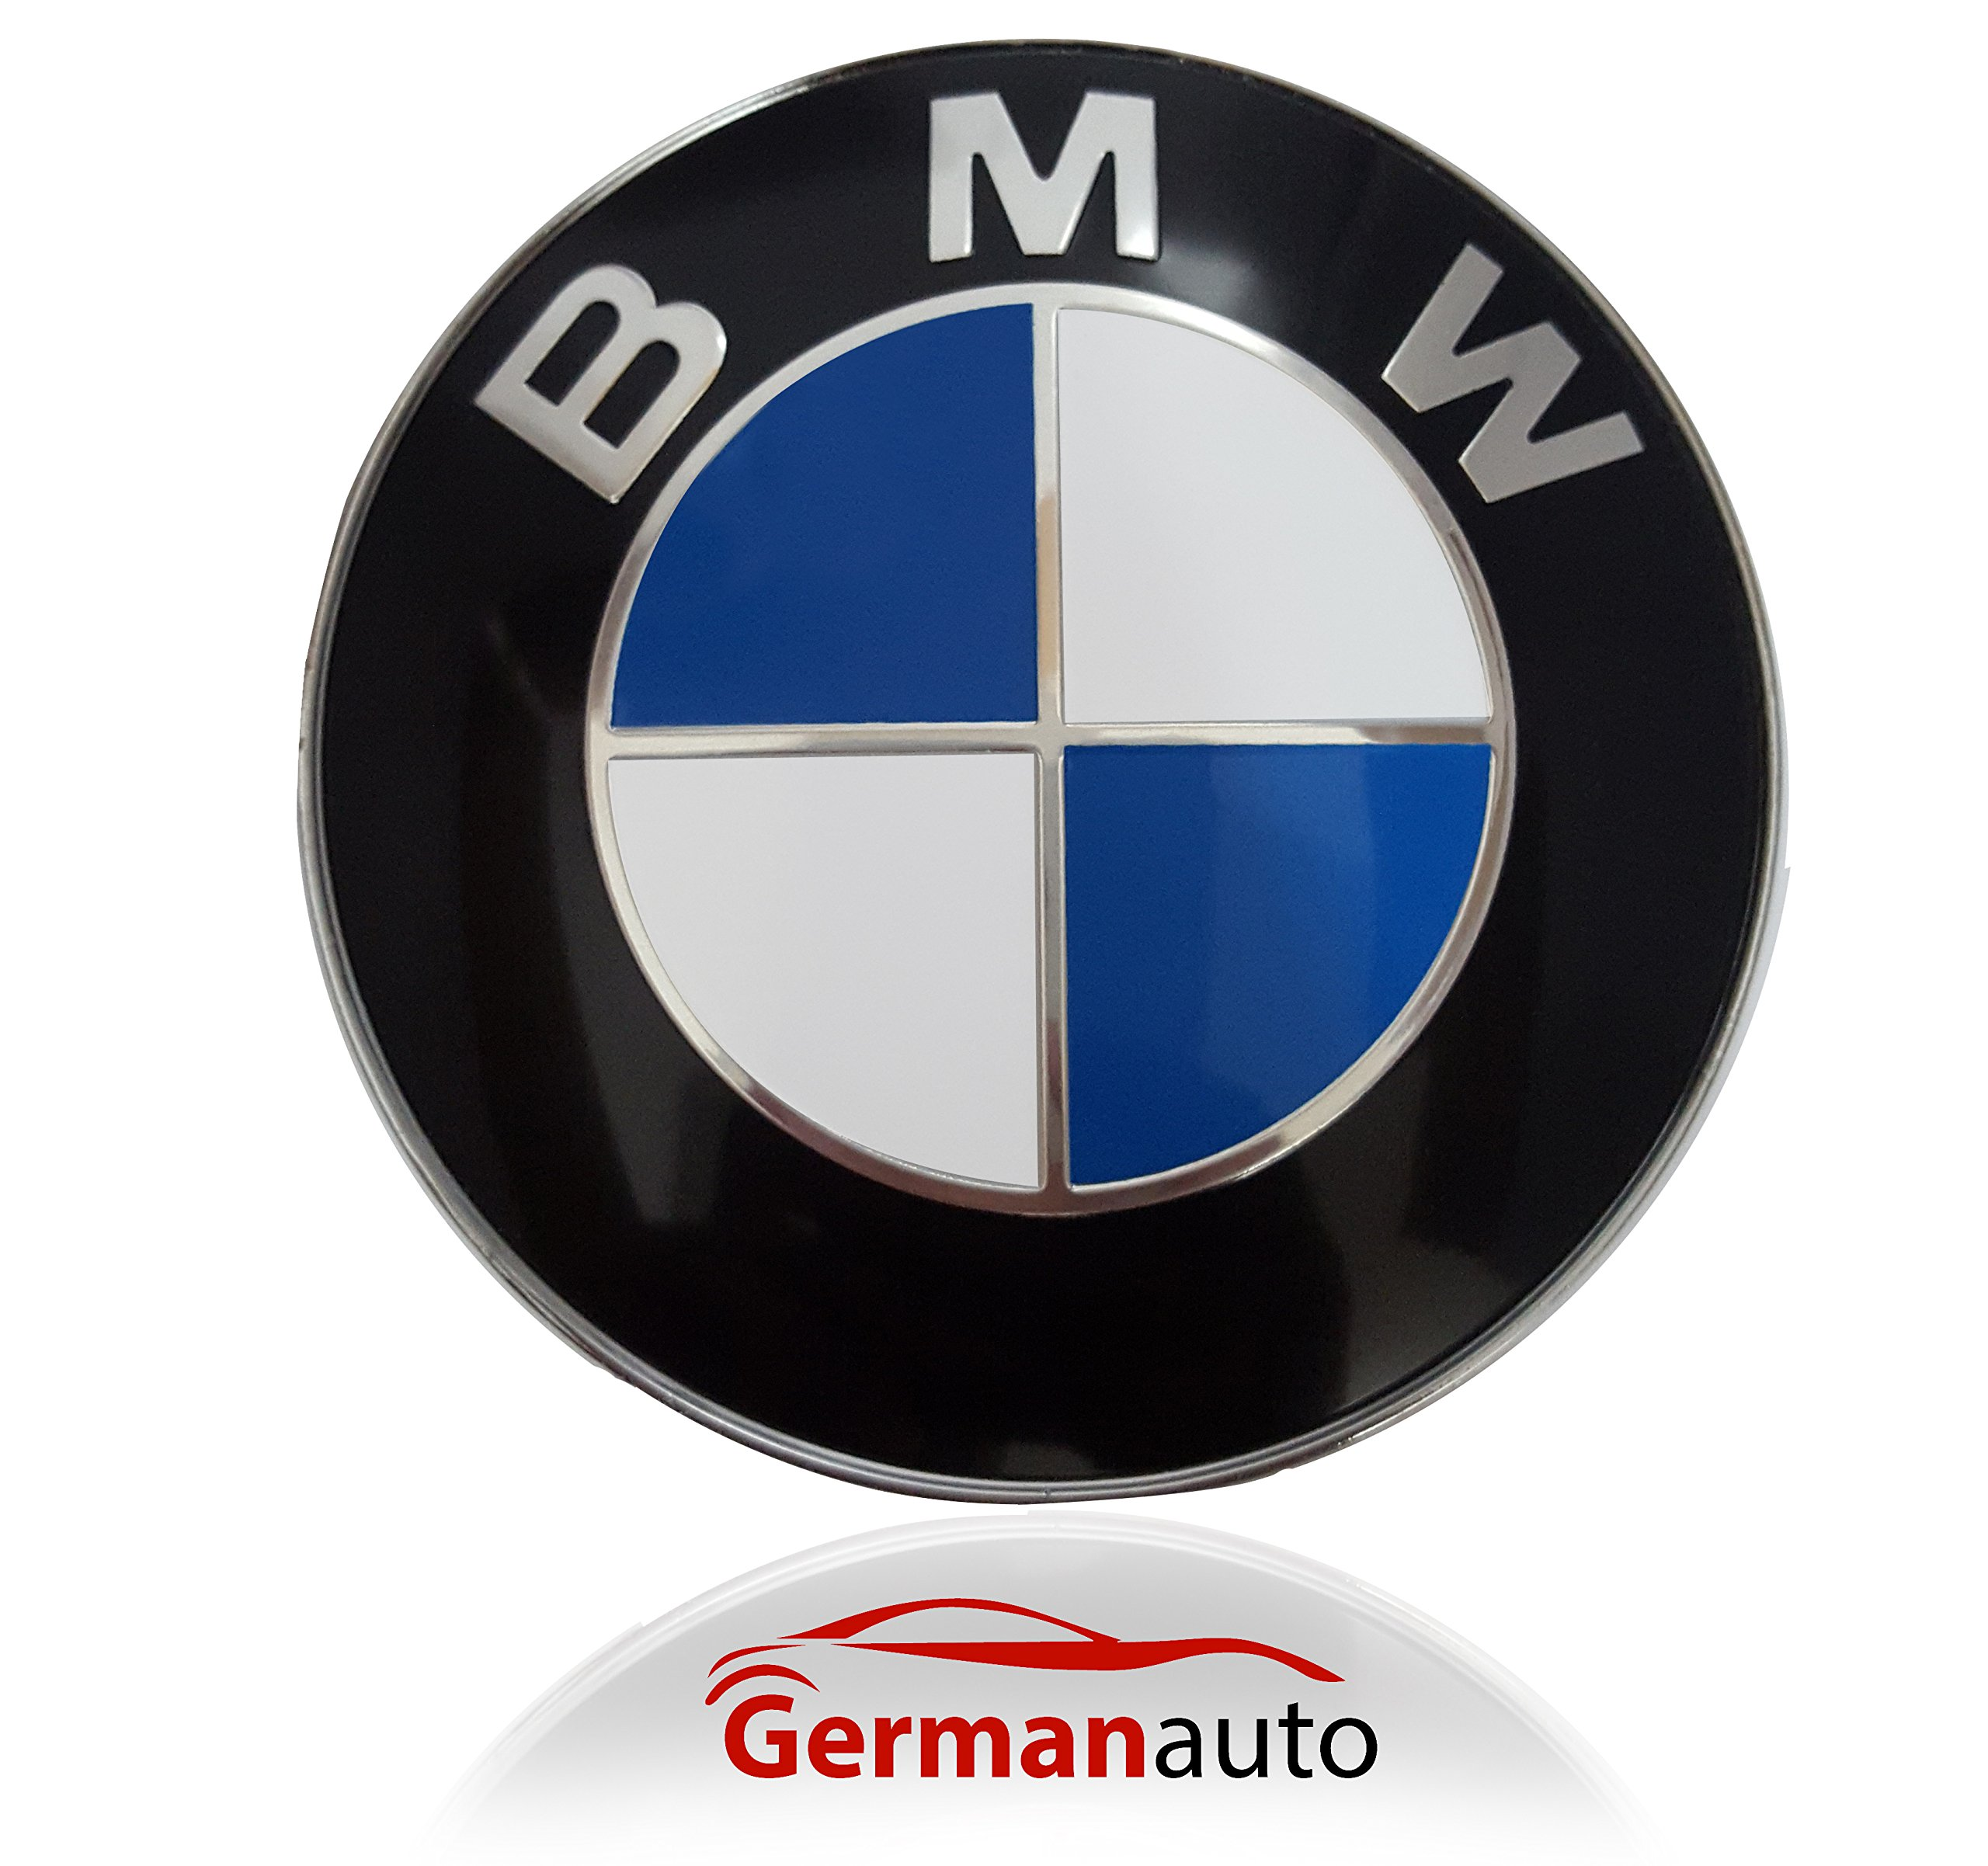 Bmw Emblem Logo Replacement For Hood Trunk 82mm For All Models Bmw E30 E36 E46 E34 E39 E60 E65